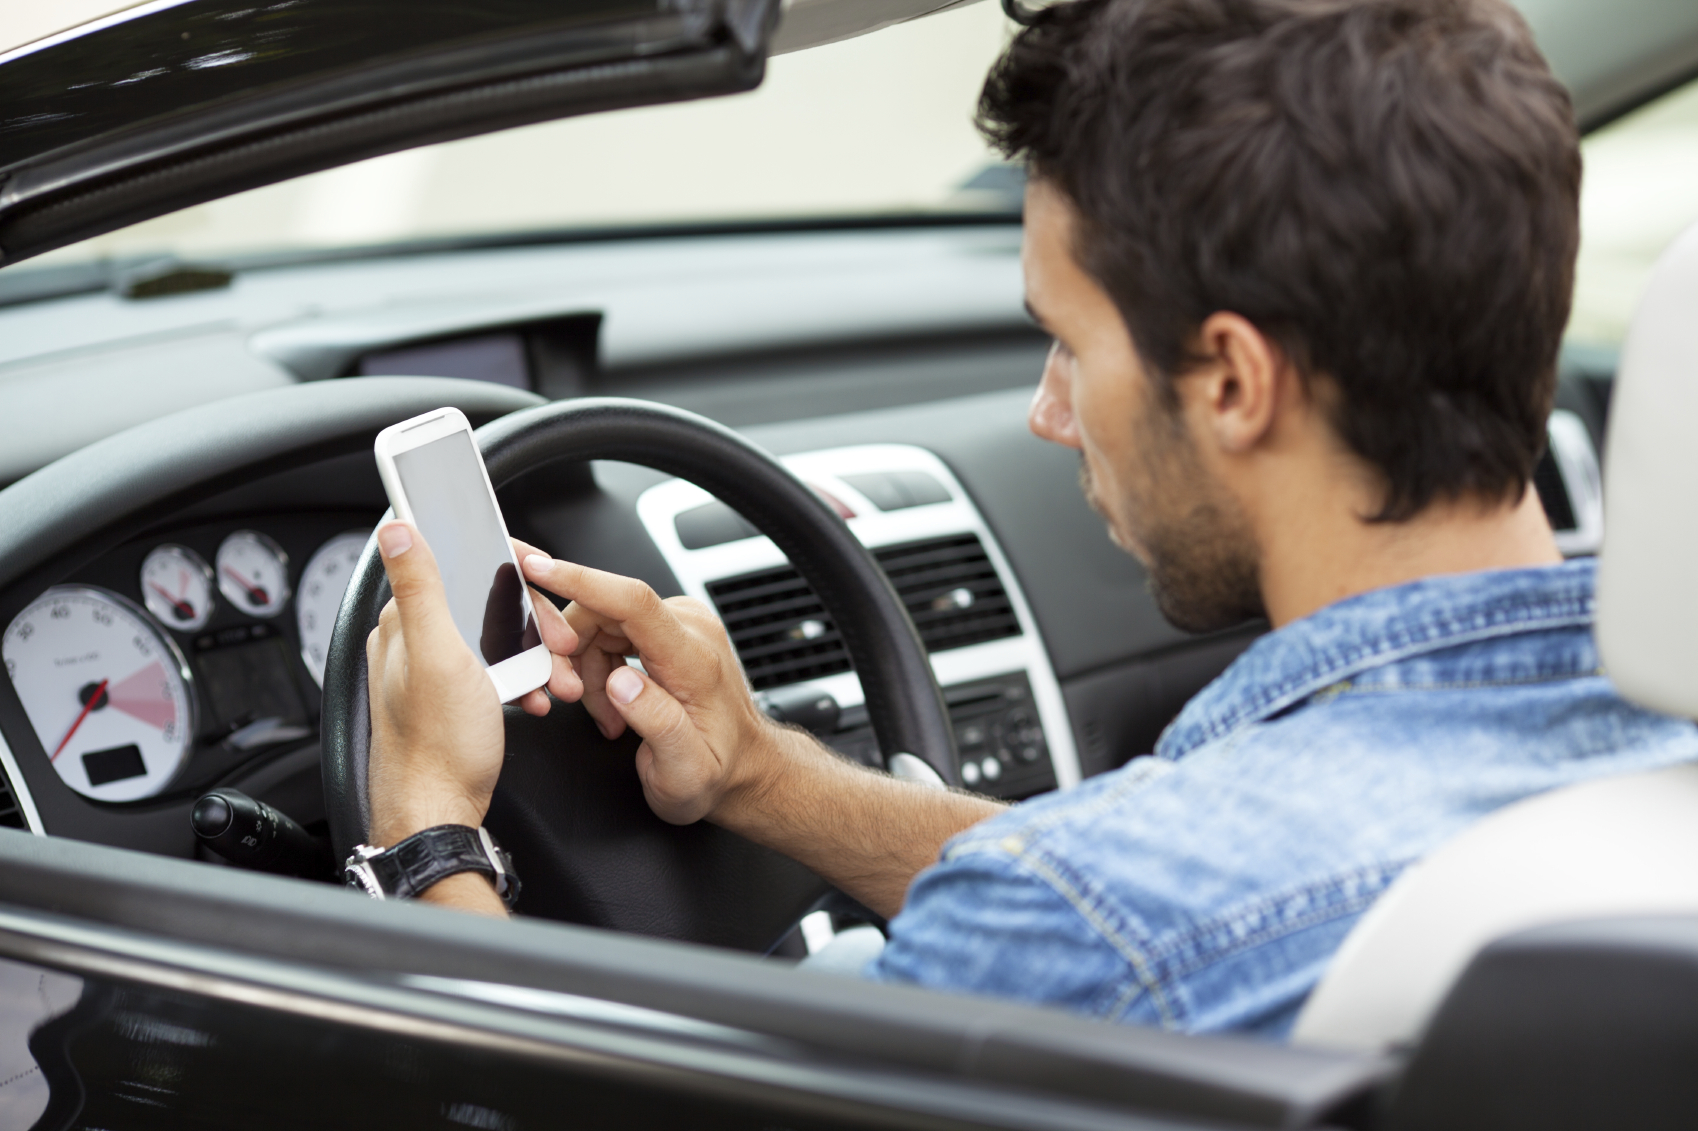 We Use Our Phones for Everything Else… Why Not Use It to Buy a Car?